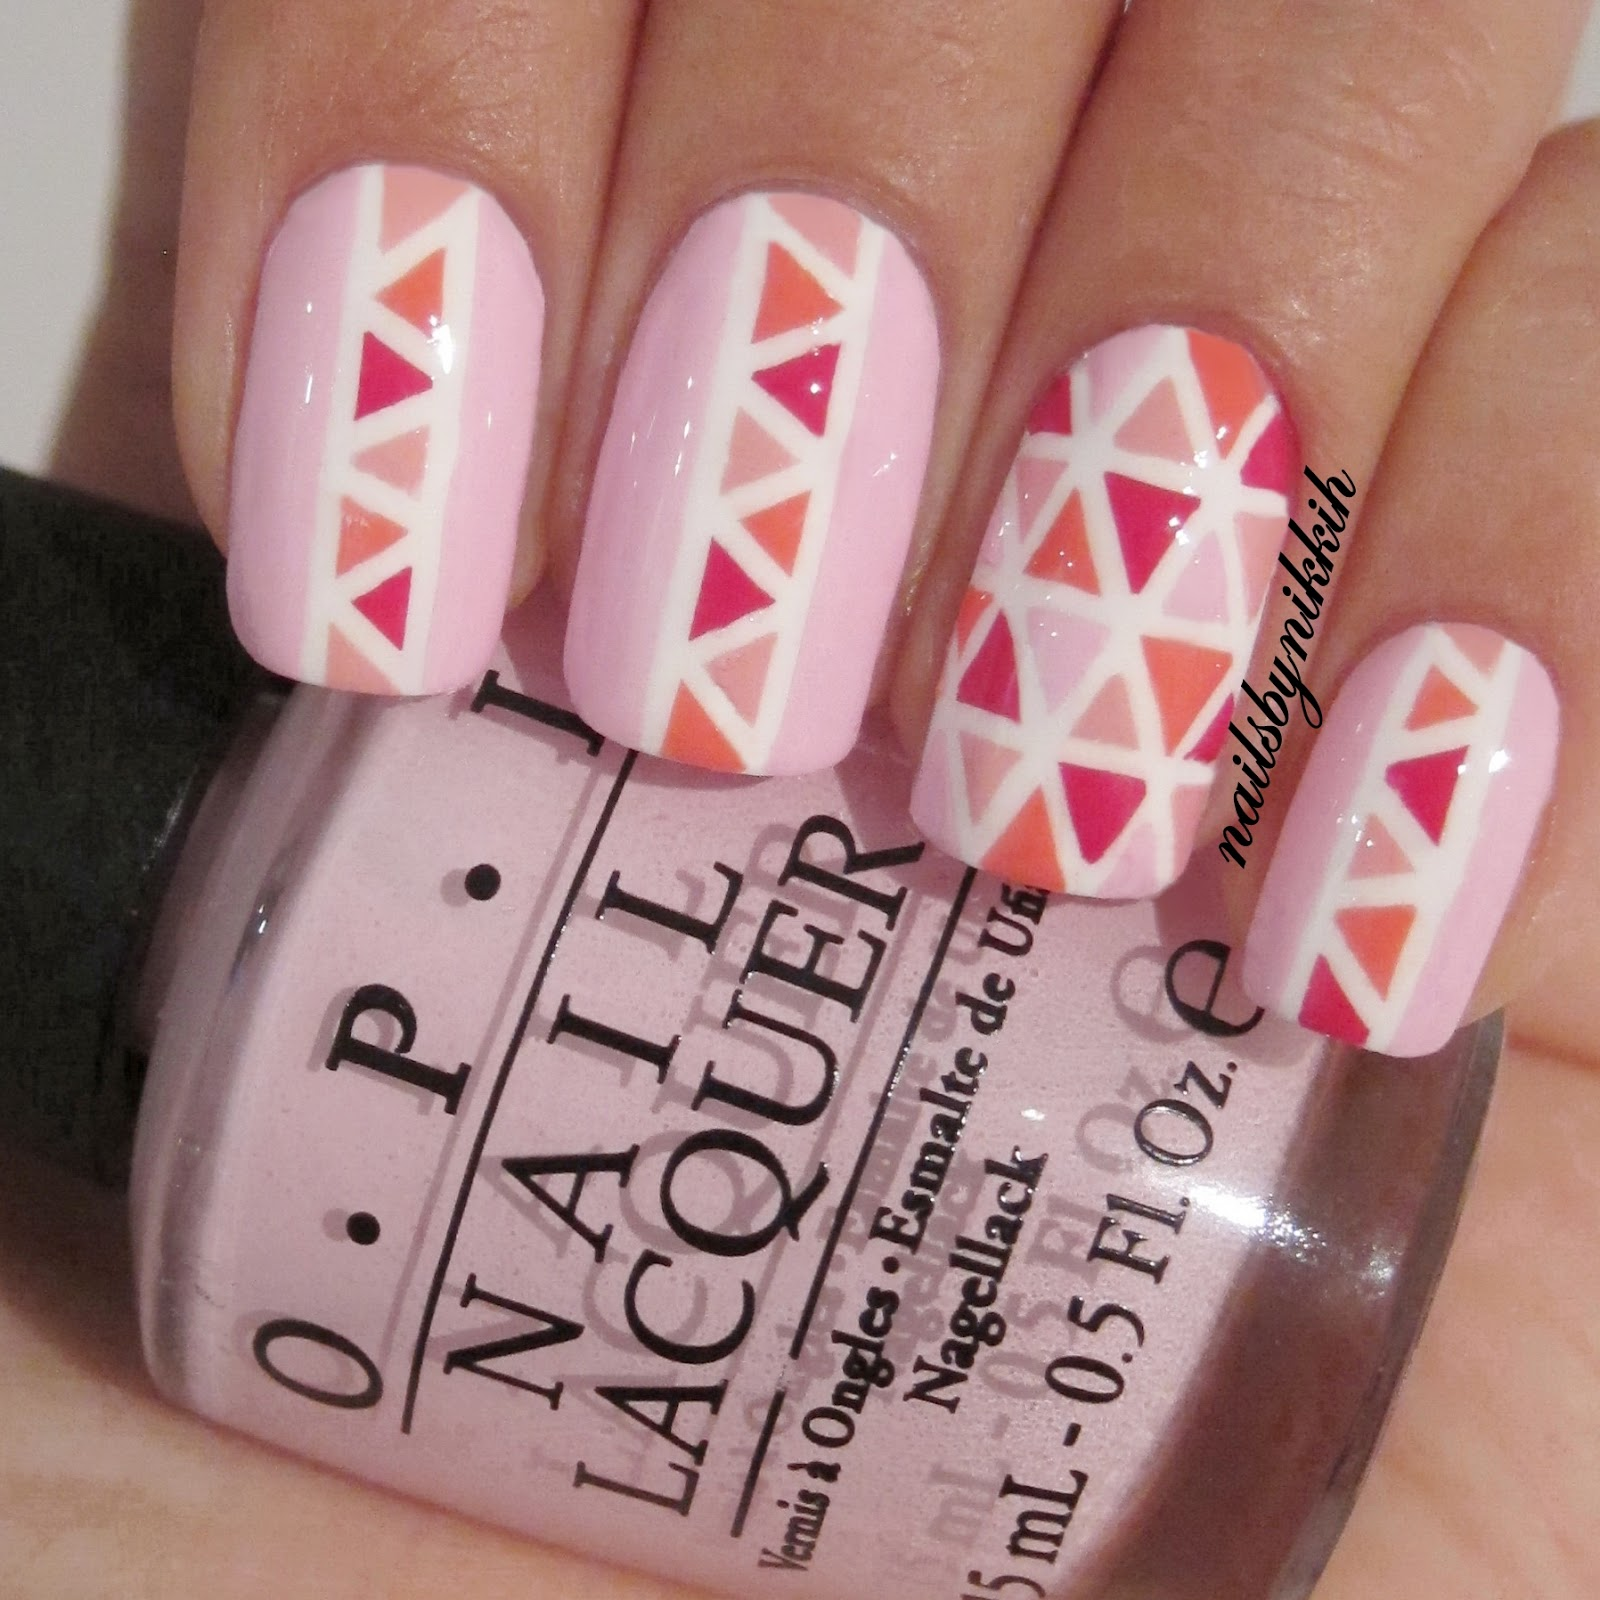 Tape Nail Art Designs: The Nail Art Trend: [Tutorial] The Trend: Striping Tape